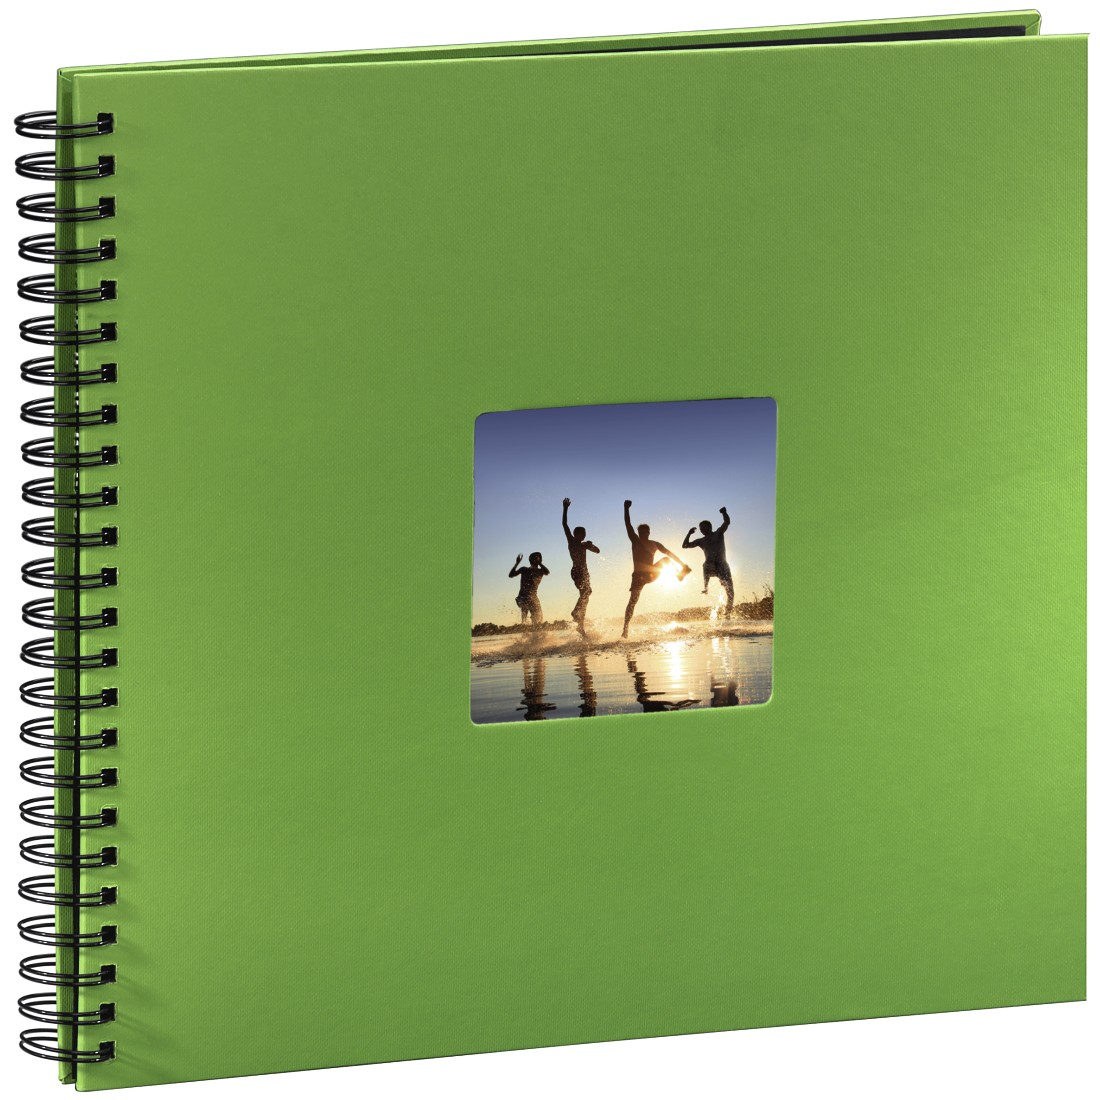 abx3 High-Res Image 3 - Hama, Fine Art Spiralbound Album, 36 x 32 cm, 50 black pages, apple-green